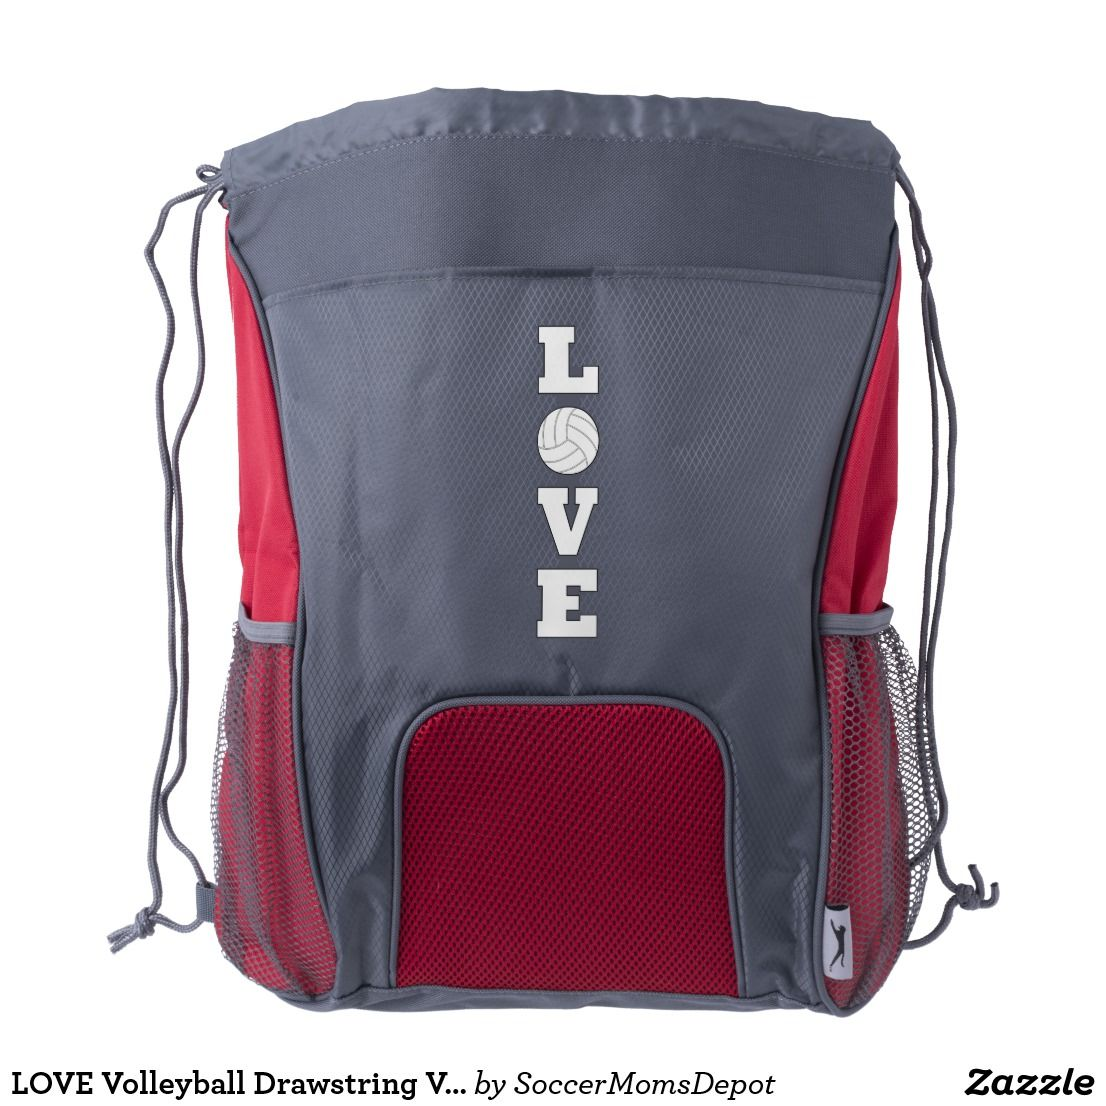 Love Volleyball Drawstring Volleyball Player Bag Zazzle Com Drawstring Backpack Backpacks Customized Drawstring Backpack